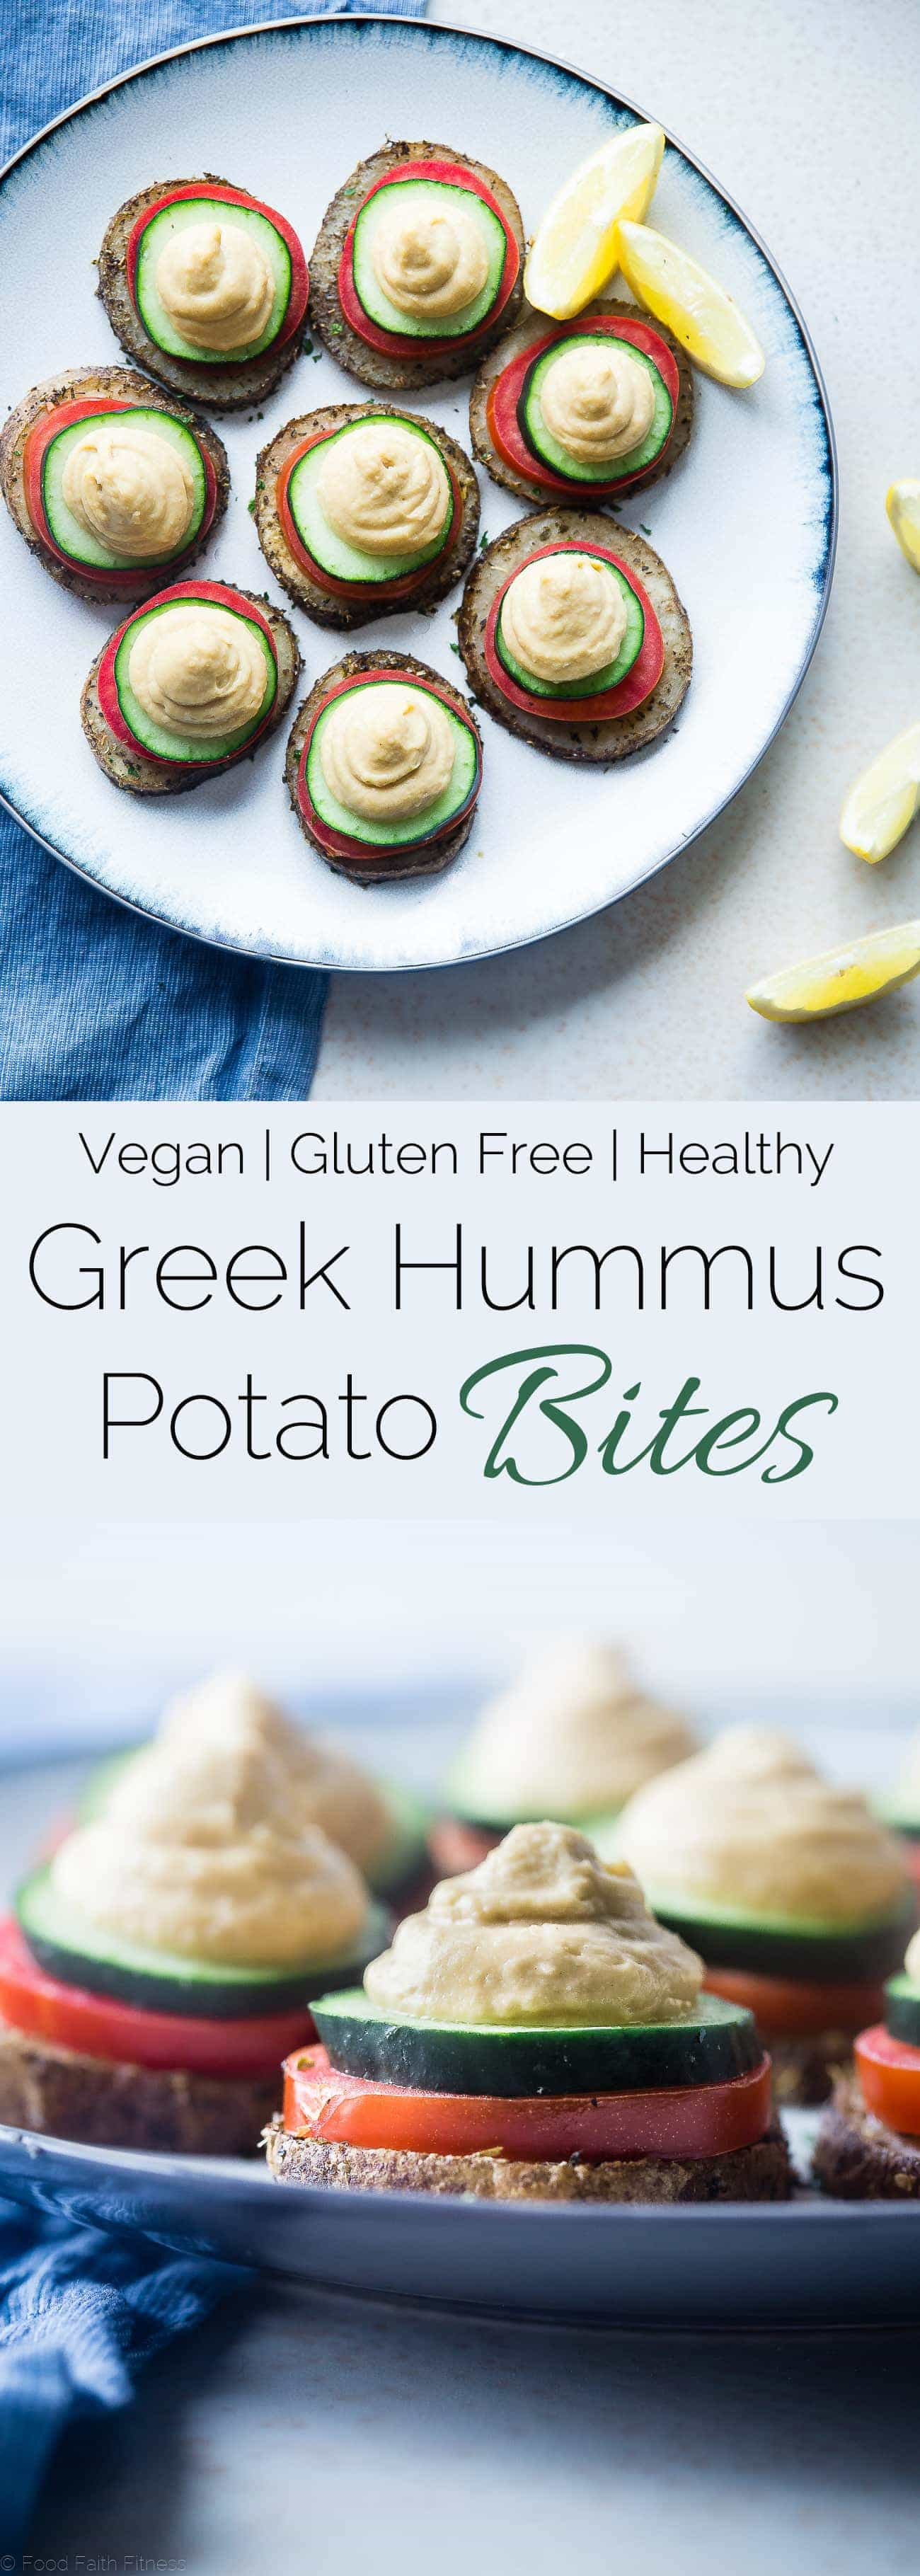 Vegan Hummus Greek Potato Bites - These healthy, vegan Greek potato bites are the perfect party food or snack! They taste like Greek salad and are gluten and dairy free! | Foodfaithfitness.com | @FoodFaithFit